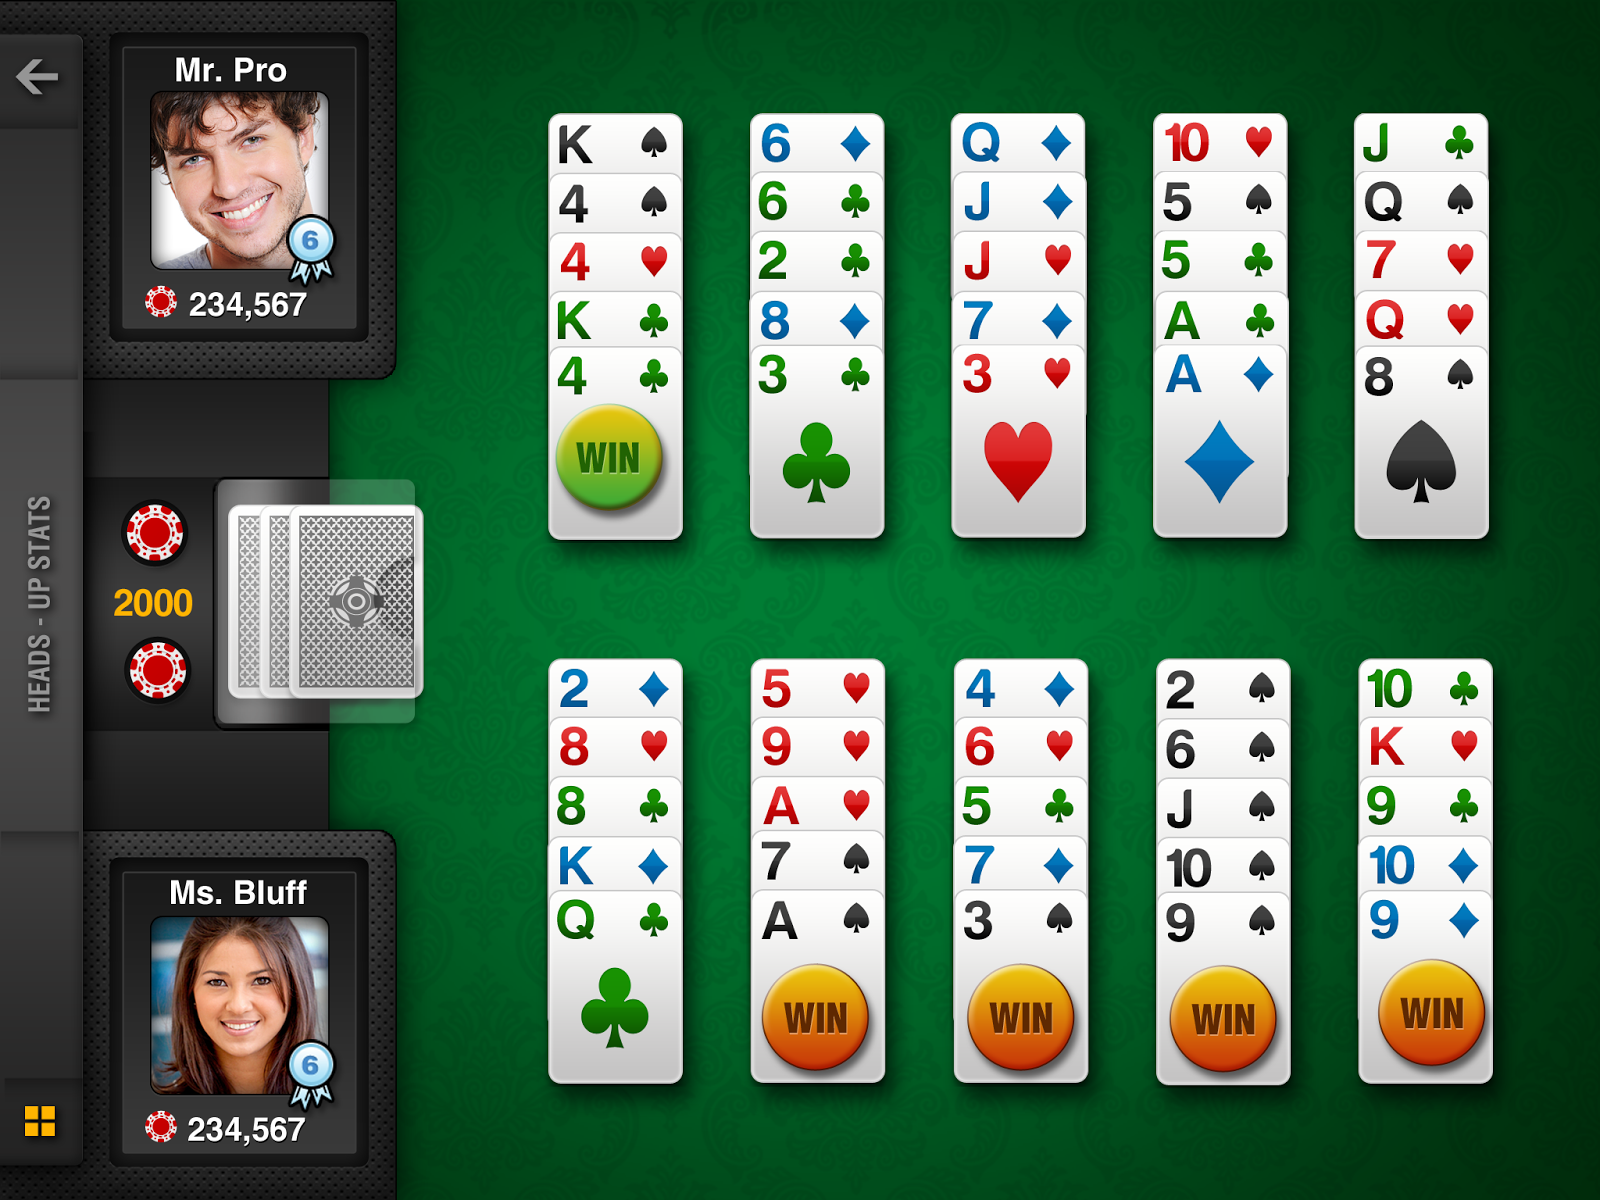 Five o poker free live heads up card game play 5 poker hands at once